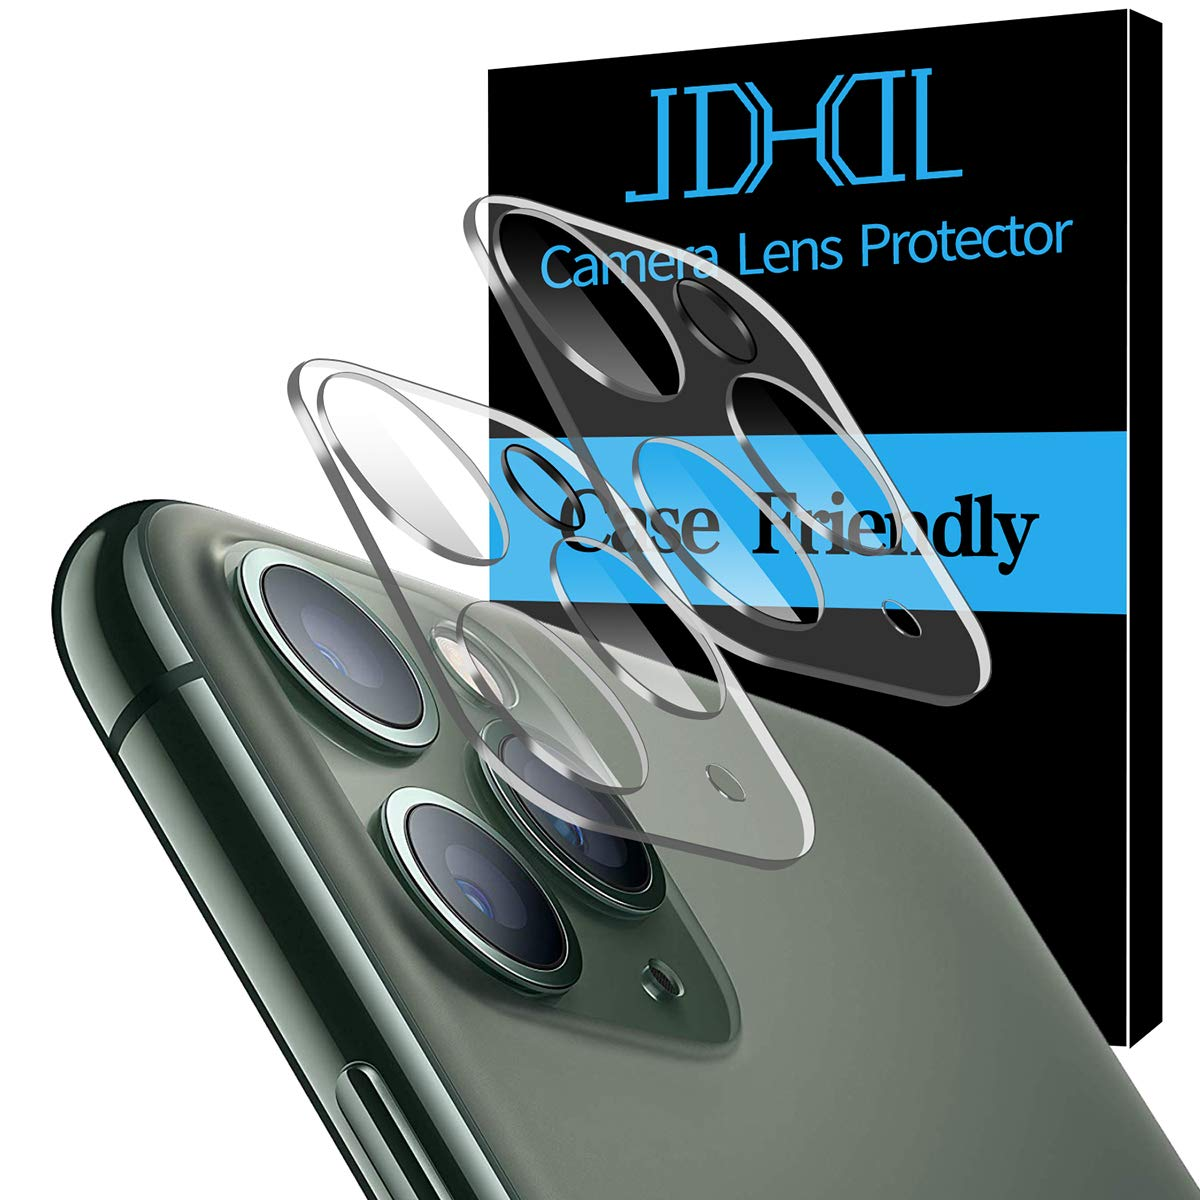 """[2 Pack] for iPhone 11 Pro/iPhone 11 Pro Max Camera Lens Protector, Bubble-Free Anti-Scratch HD Clear Tempered Glass Camera Lens Screen Protector 6.5"""" & 5.8"""""""